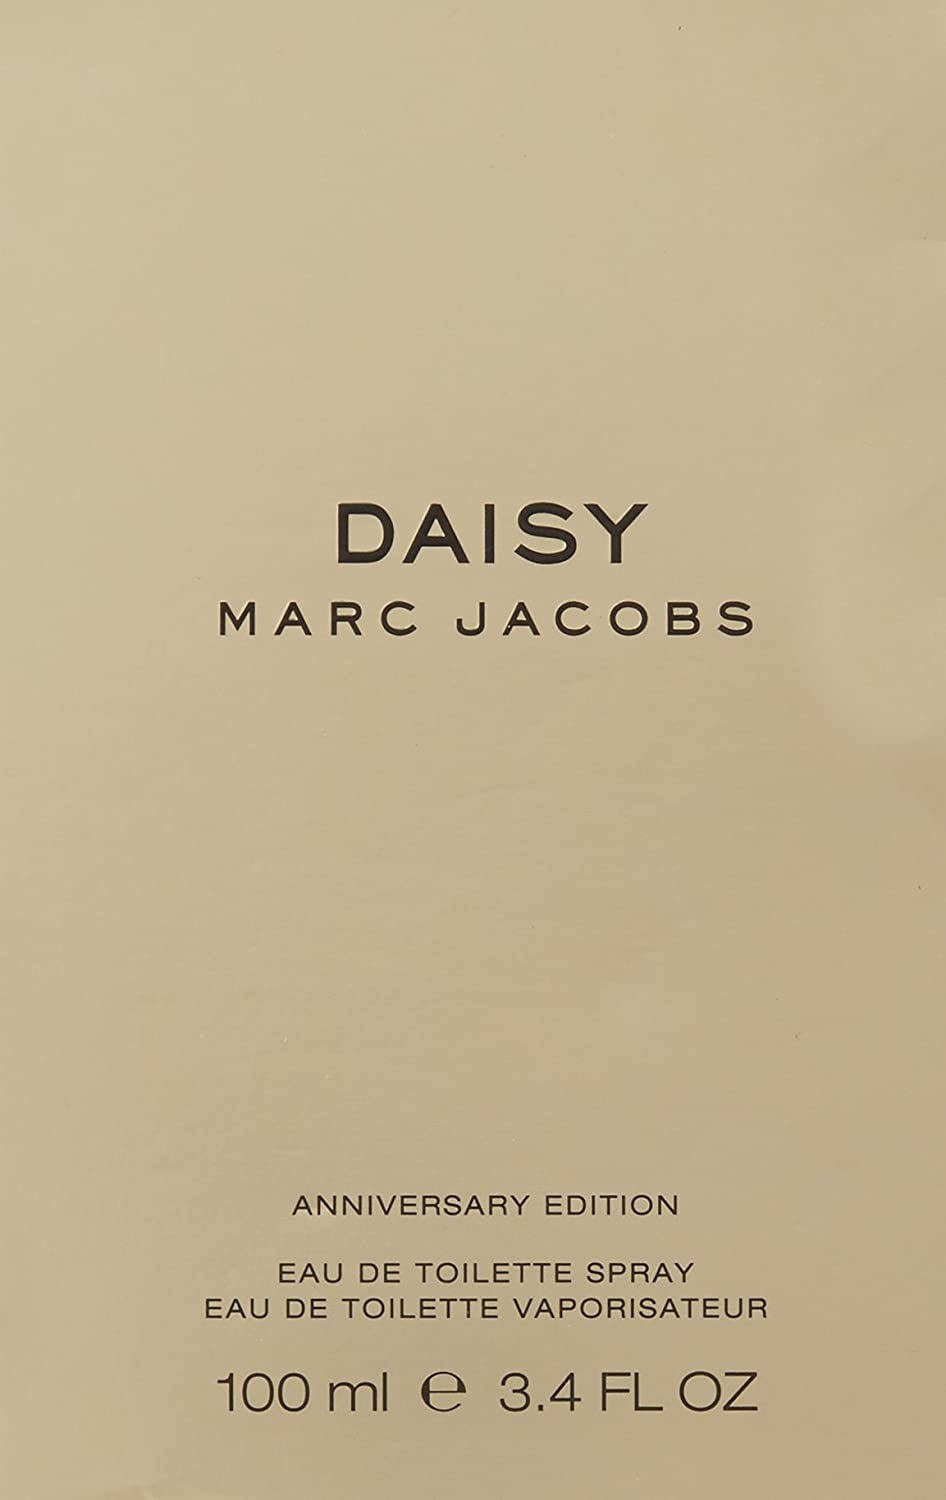 MARC JACOBS Daisy Eau de Toilette Spray Anniversary Limited Edition, 3.4 Ounce